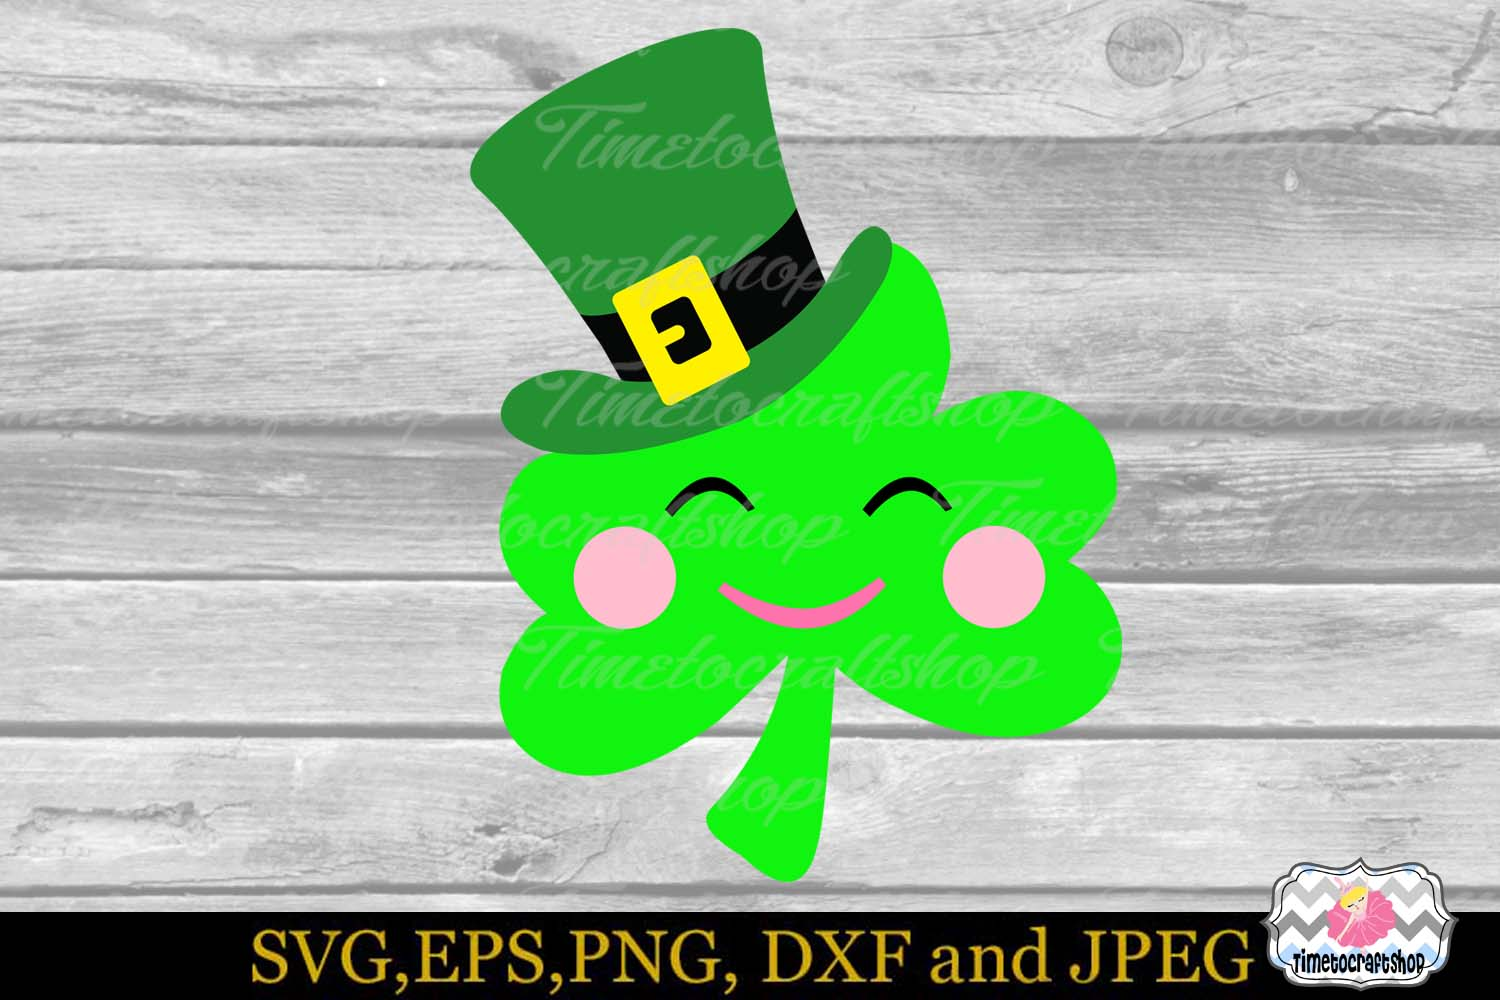 SVG, Dxf, Eps & Png St Patrick's Day Leprechaun hat Clover example image 2